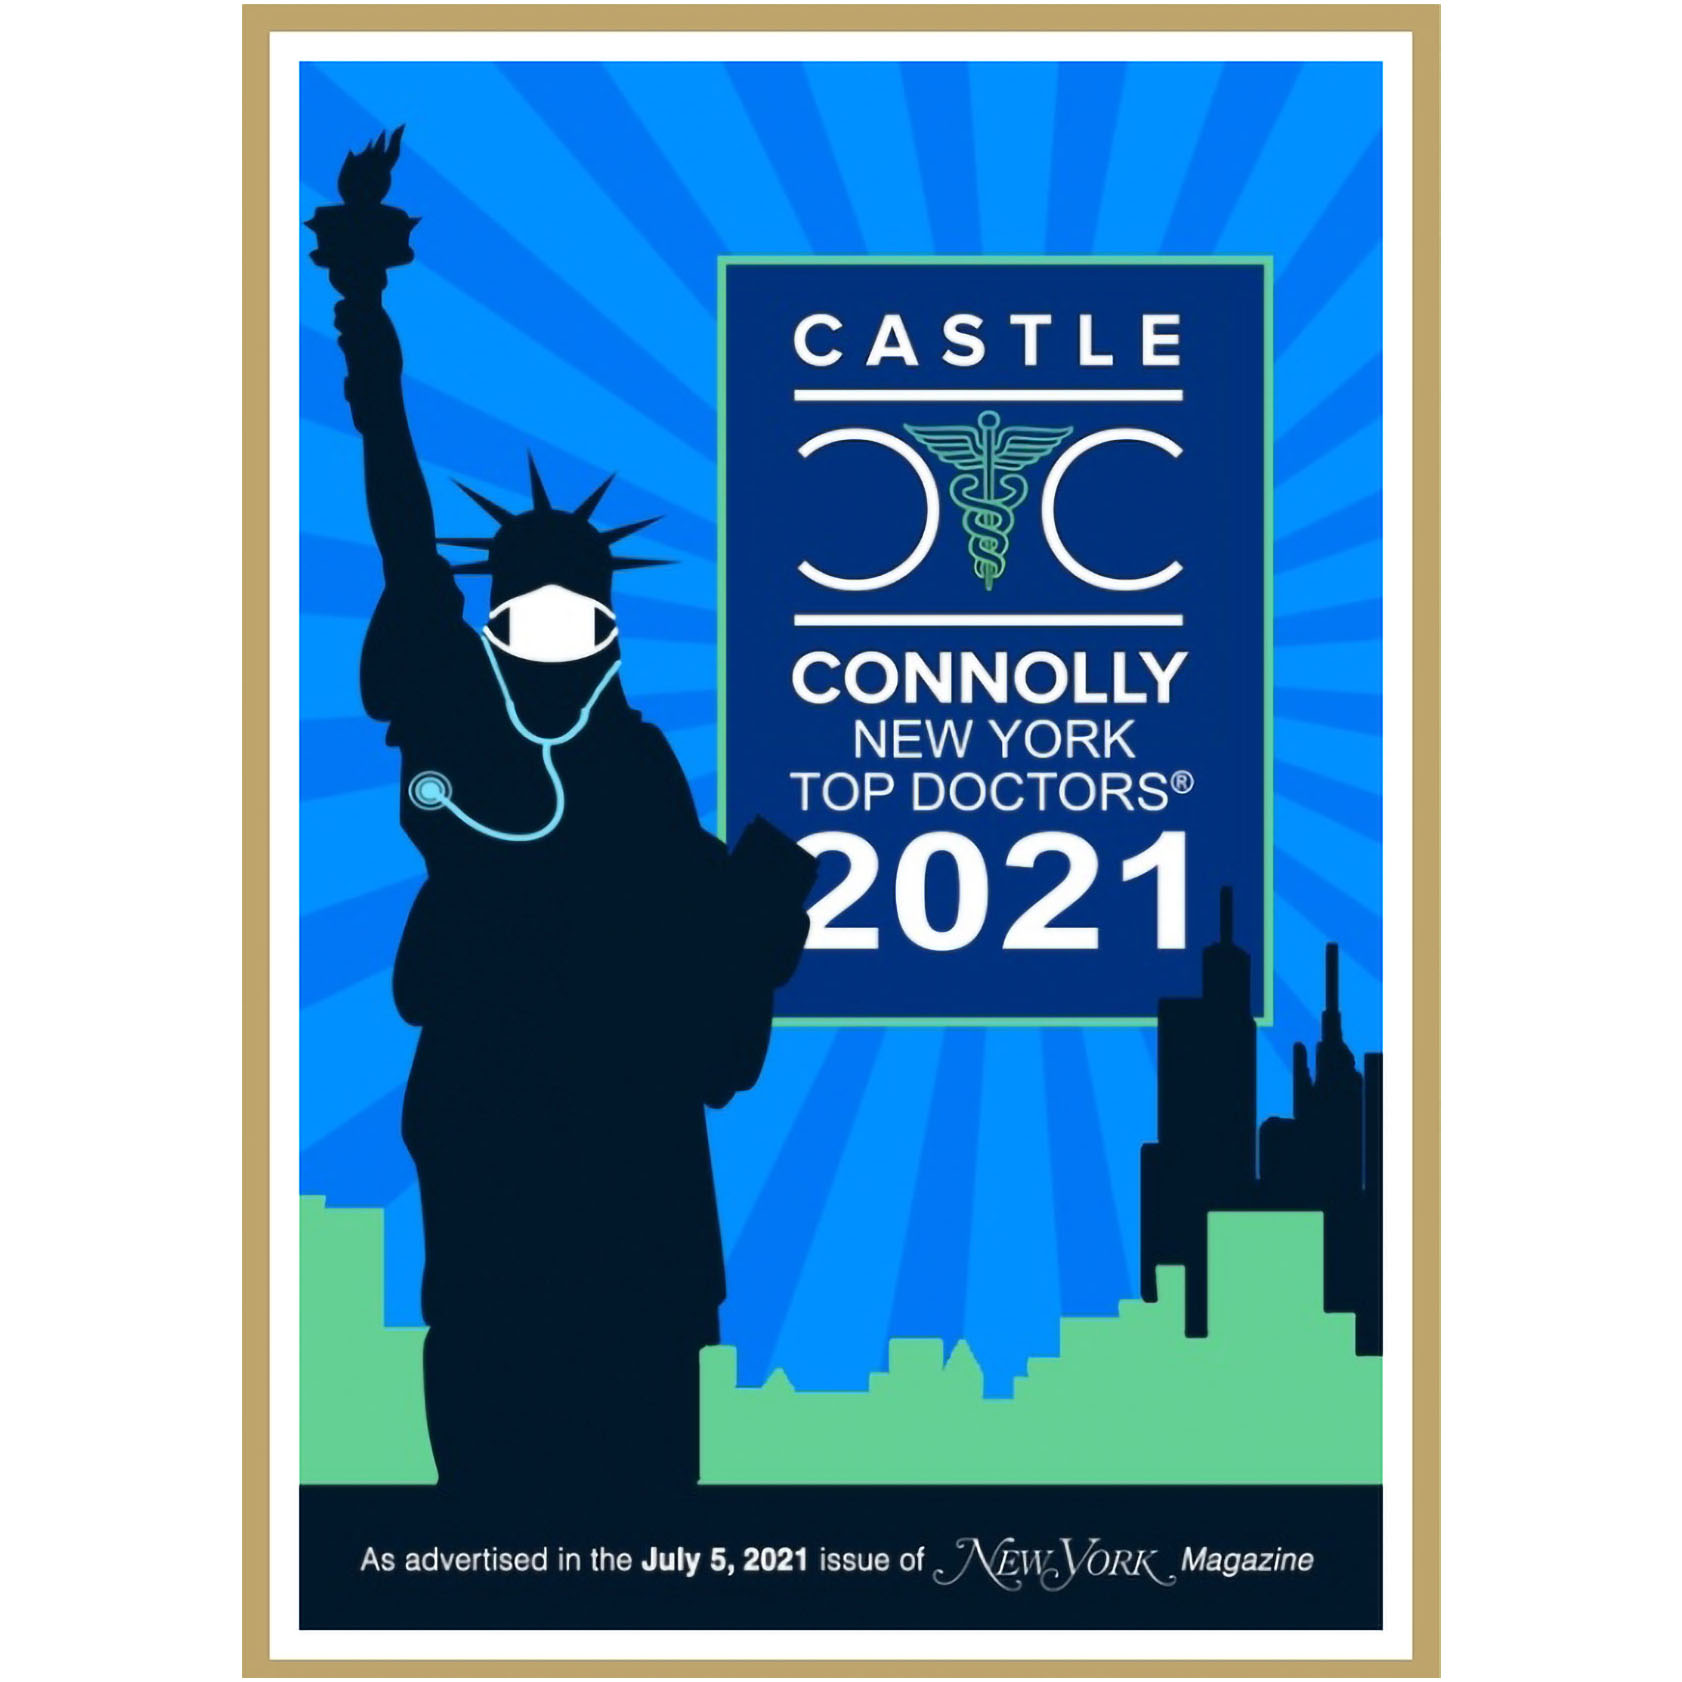 Castle Connolly New York Top Doctors 2021